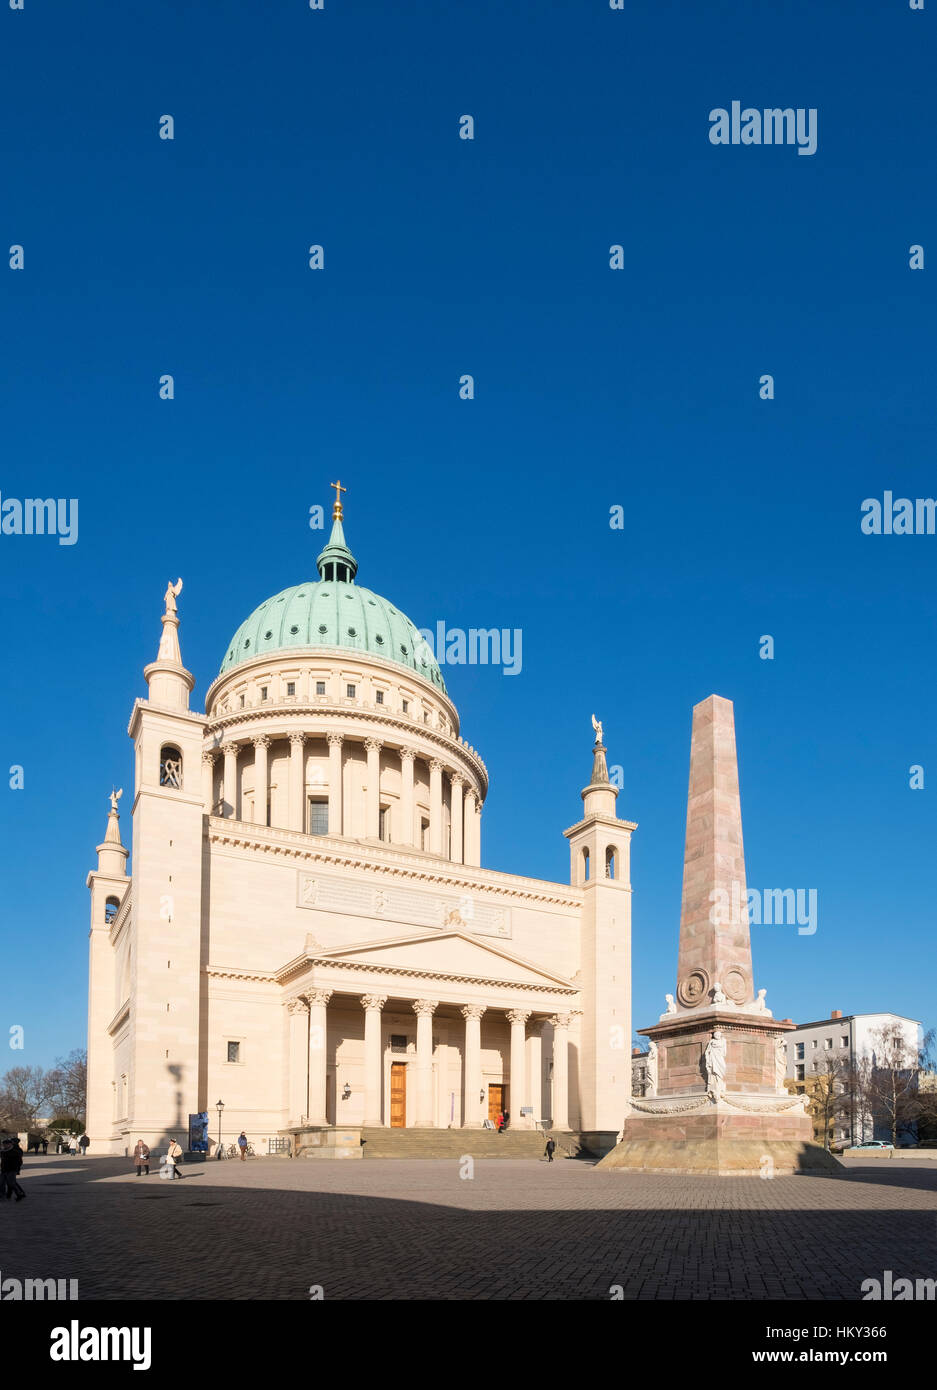 Nikolaikirche church in the Alter Markt (Old Market) Potsdam , Germany - Stock Image